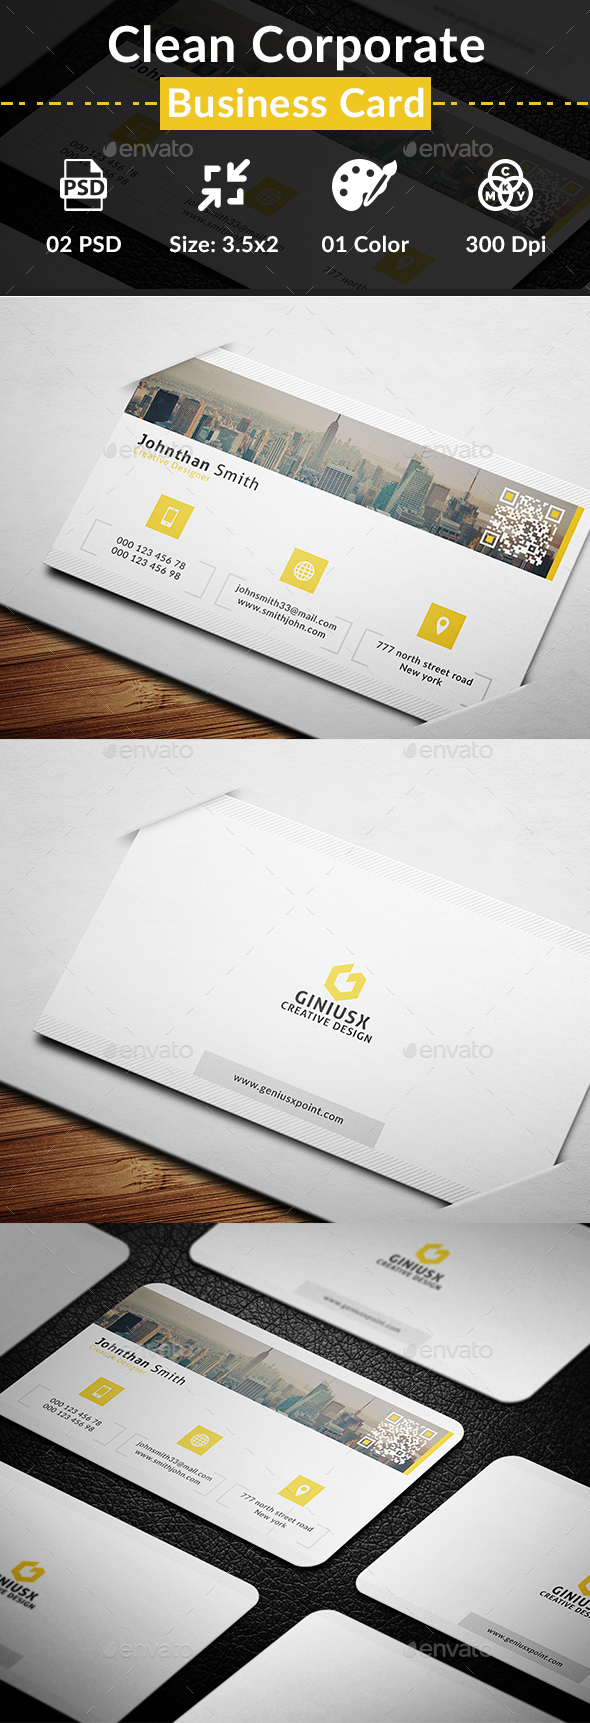 Clean Corporate Business Card - Business Cards Print Templates